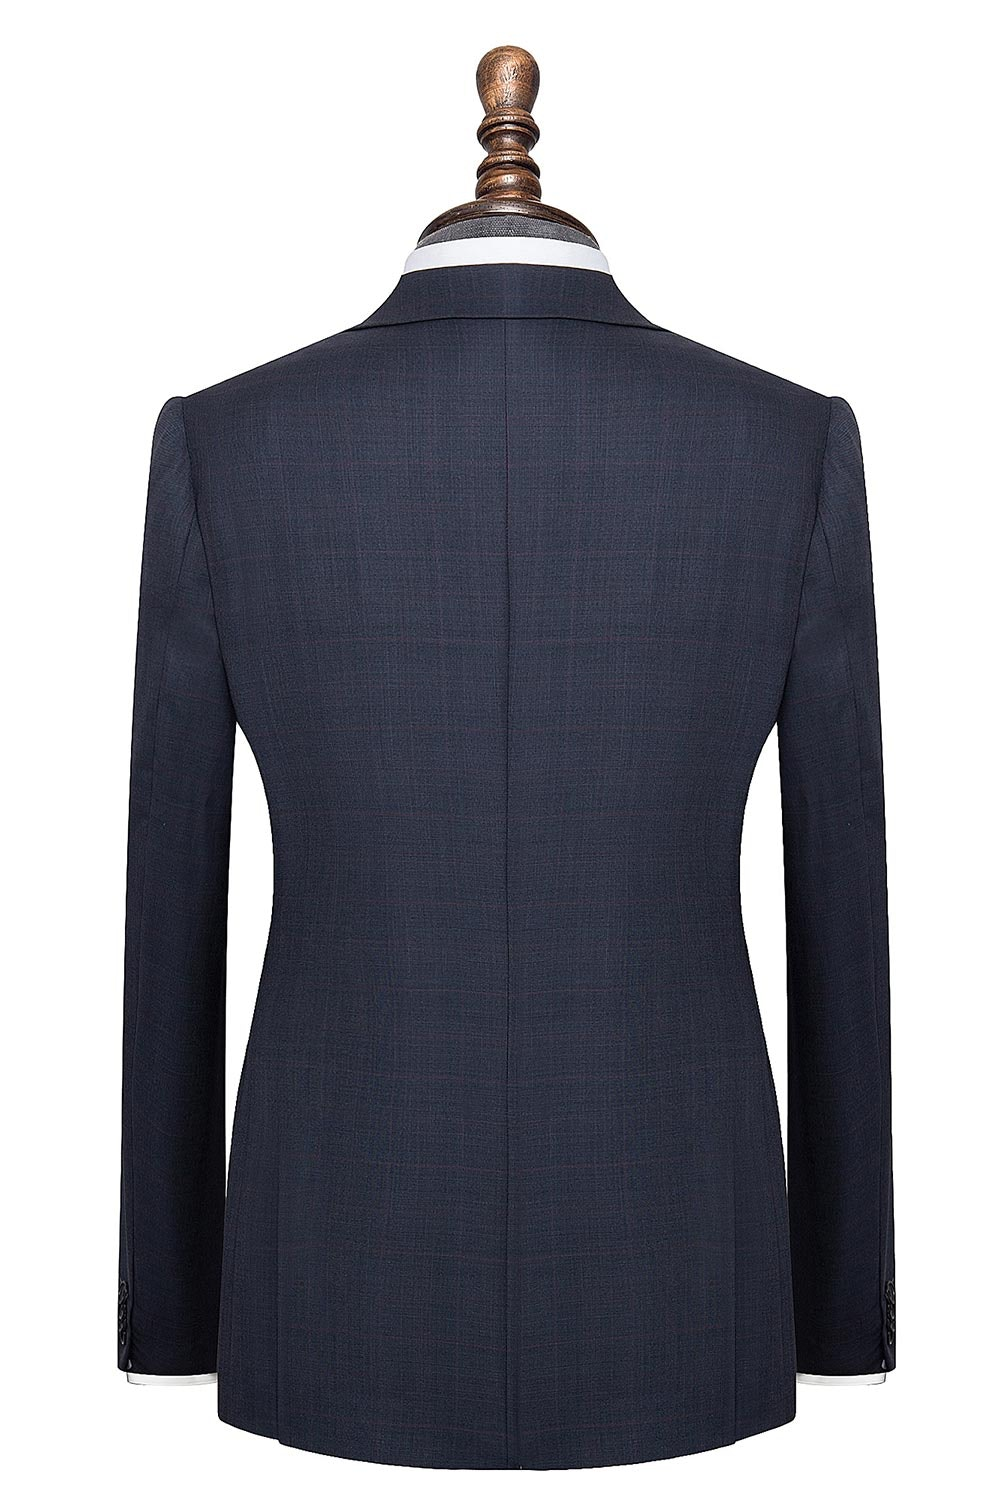 InStitchu Collection The Rutherglen Jacket